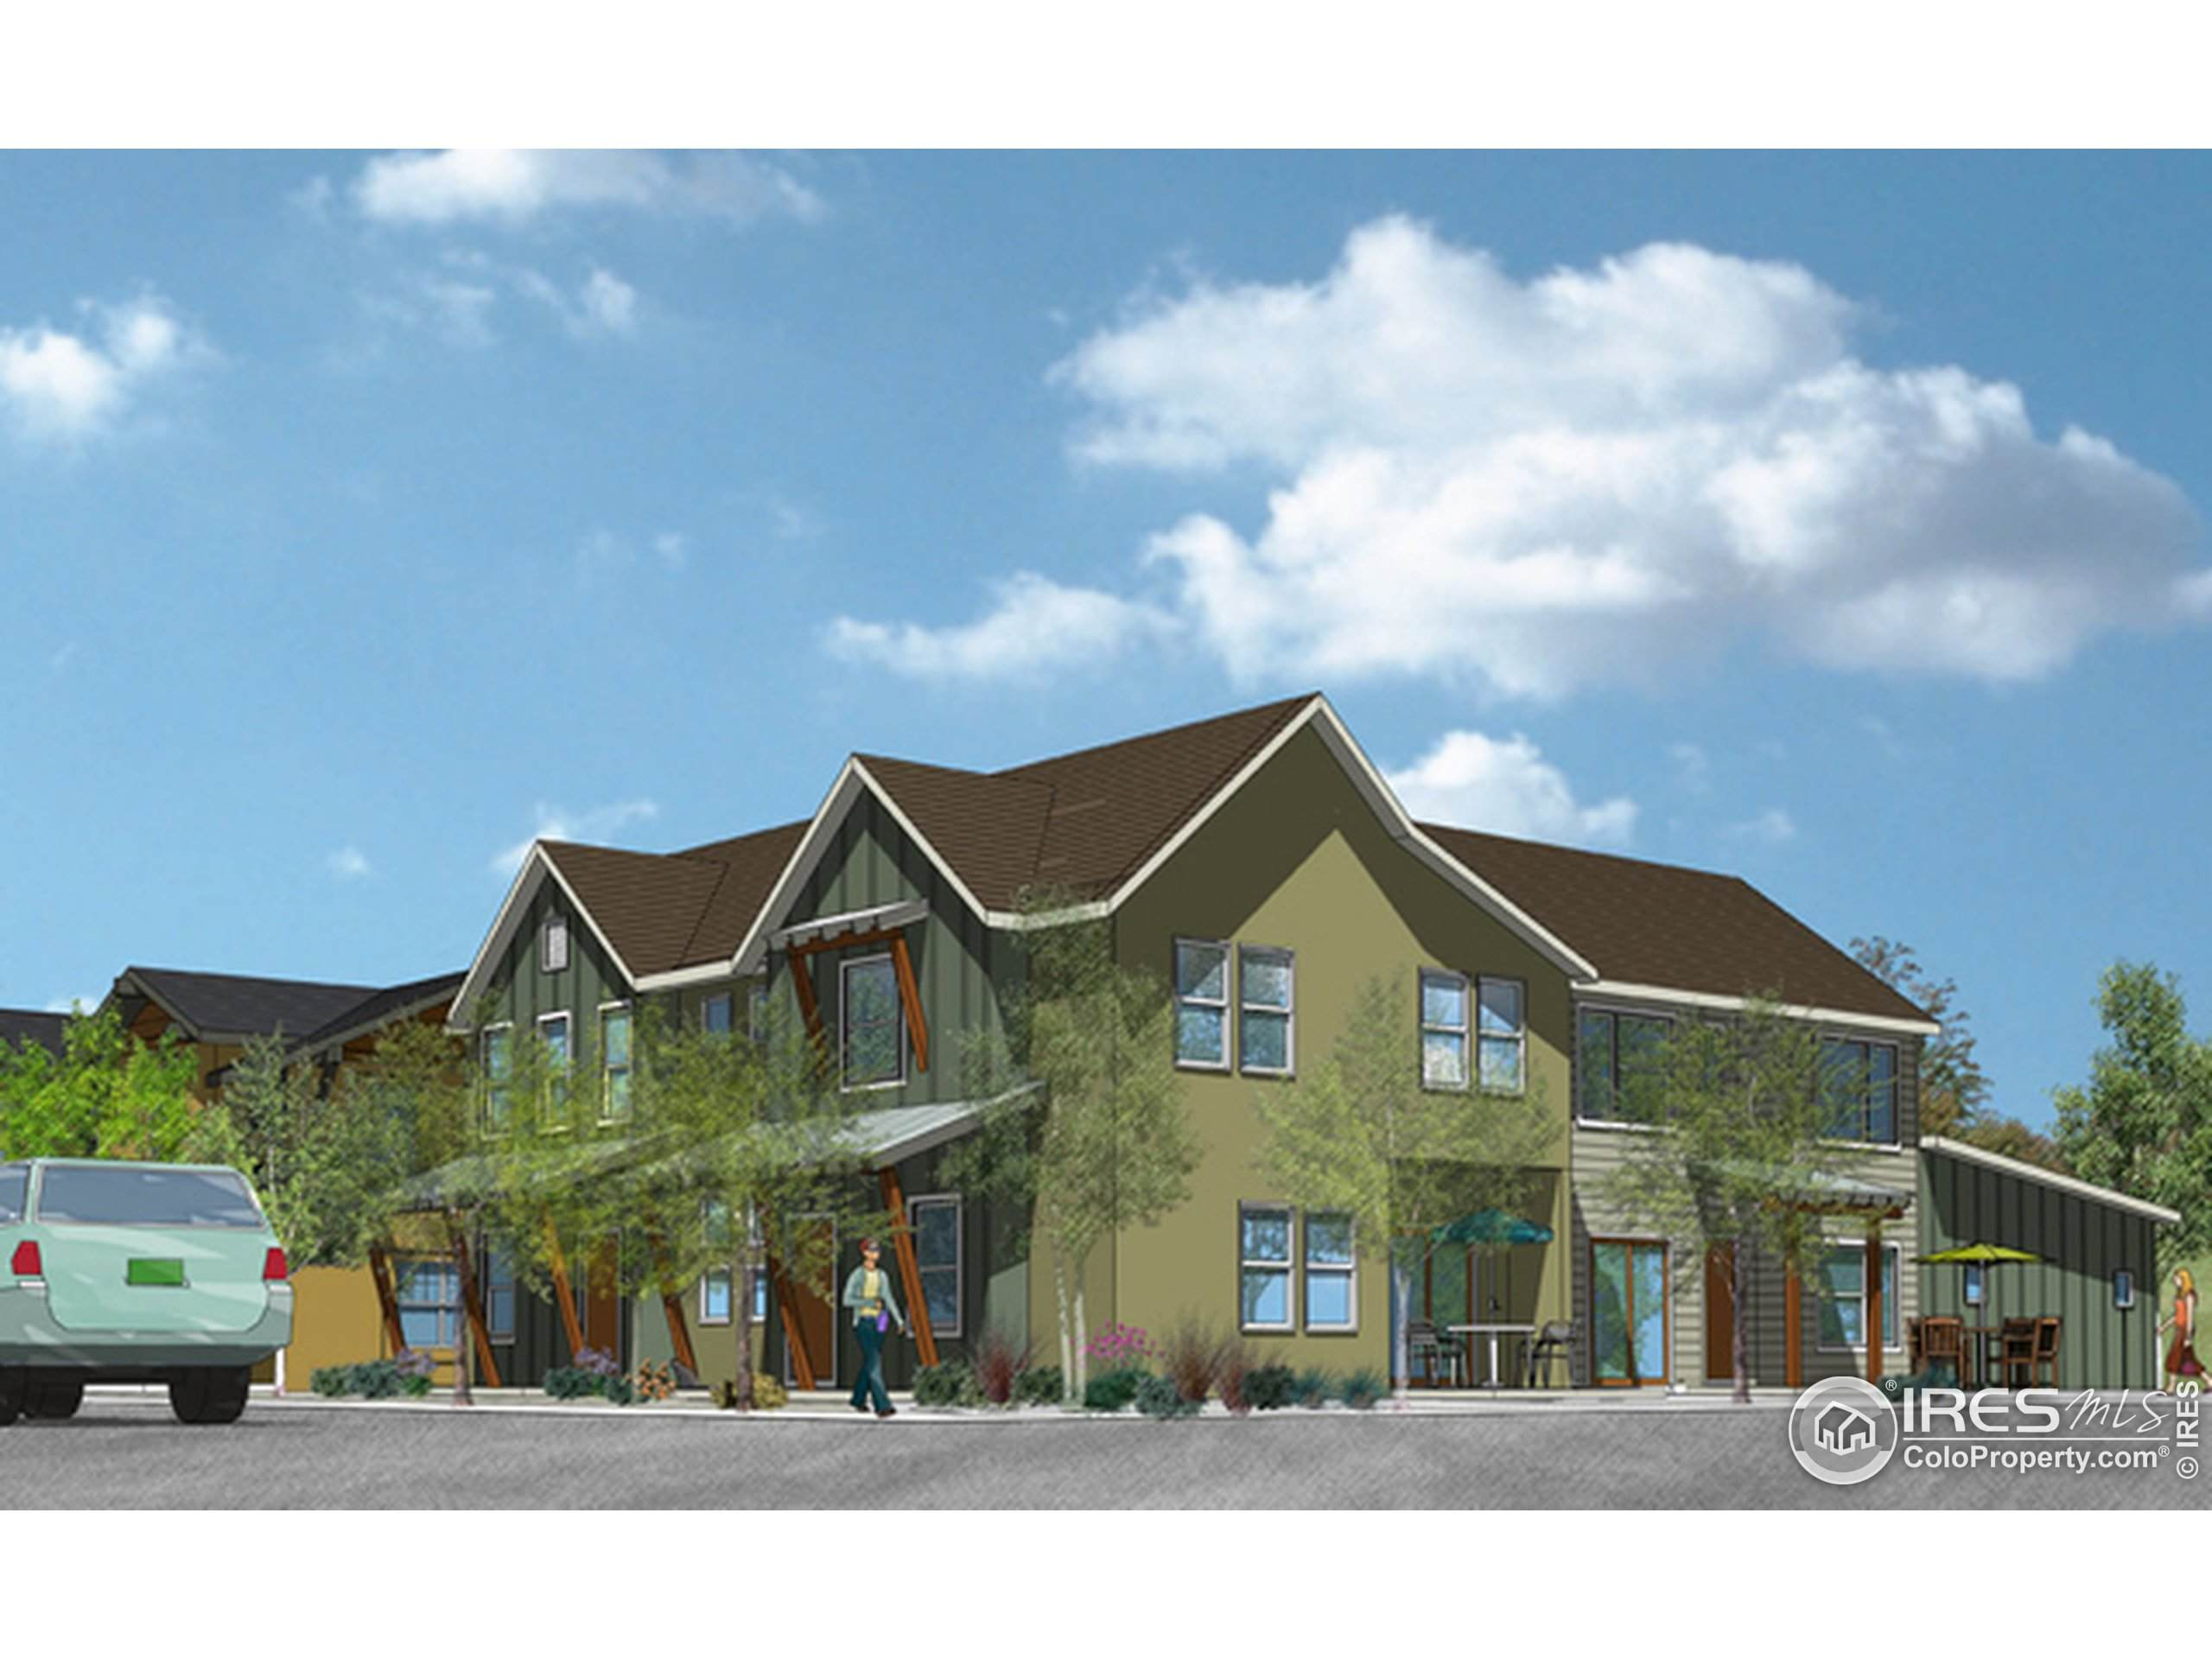 551 Bald Mountain Dr, Livermore, CO 80536 (MLS #926314) :: Keller Williams Realty